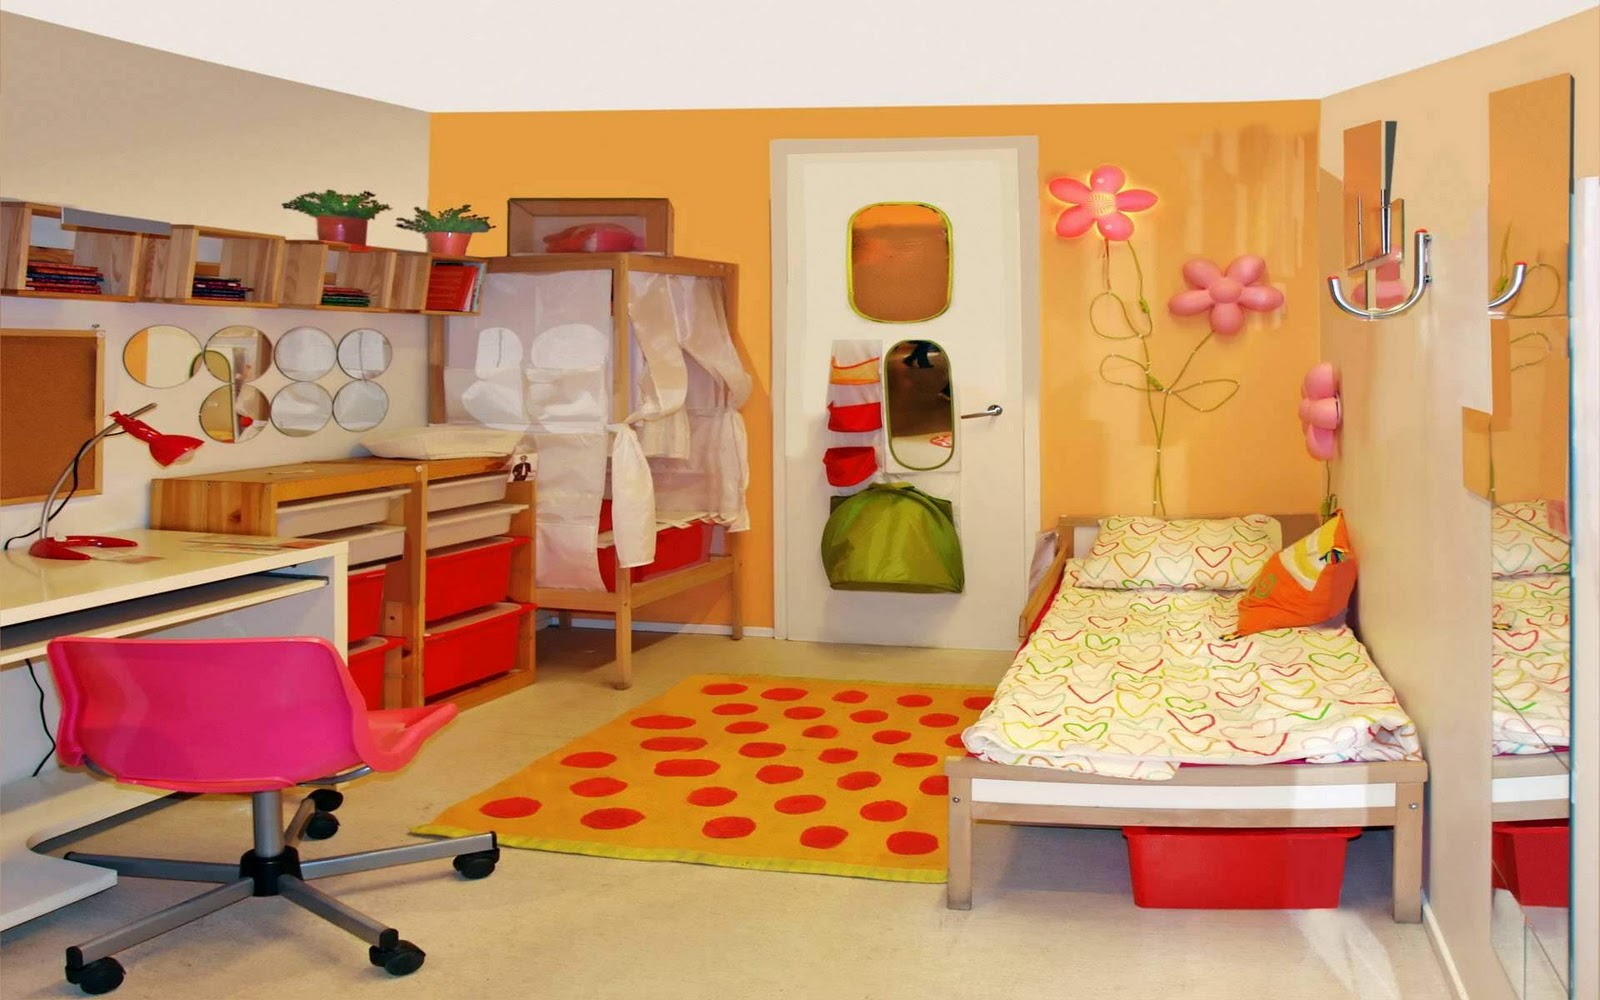 Wallpaper wallpaper ideas for kids room Wallpaper for childrens room